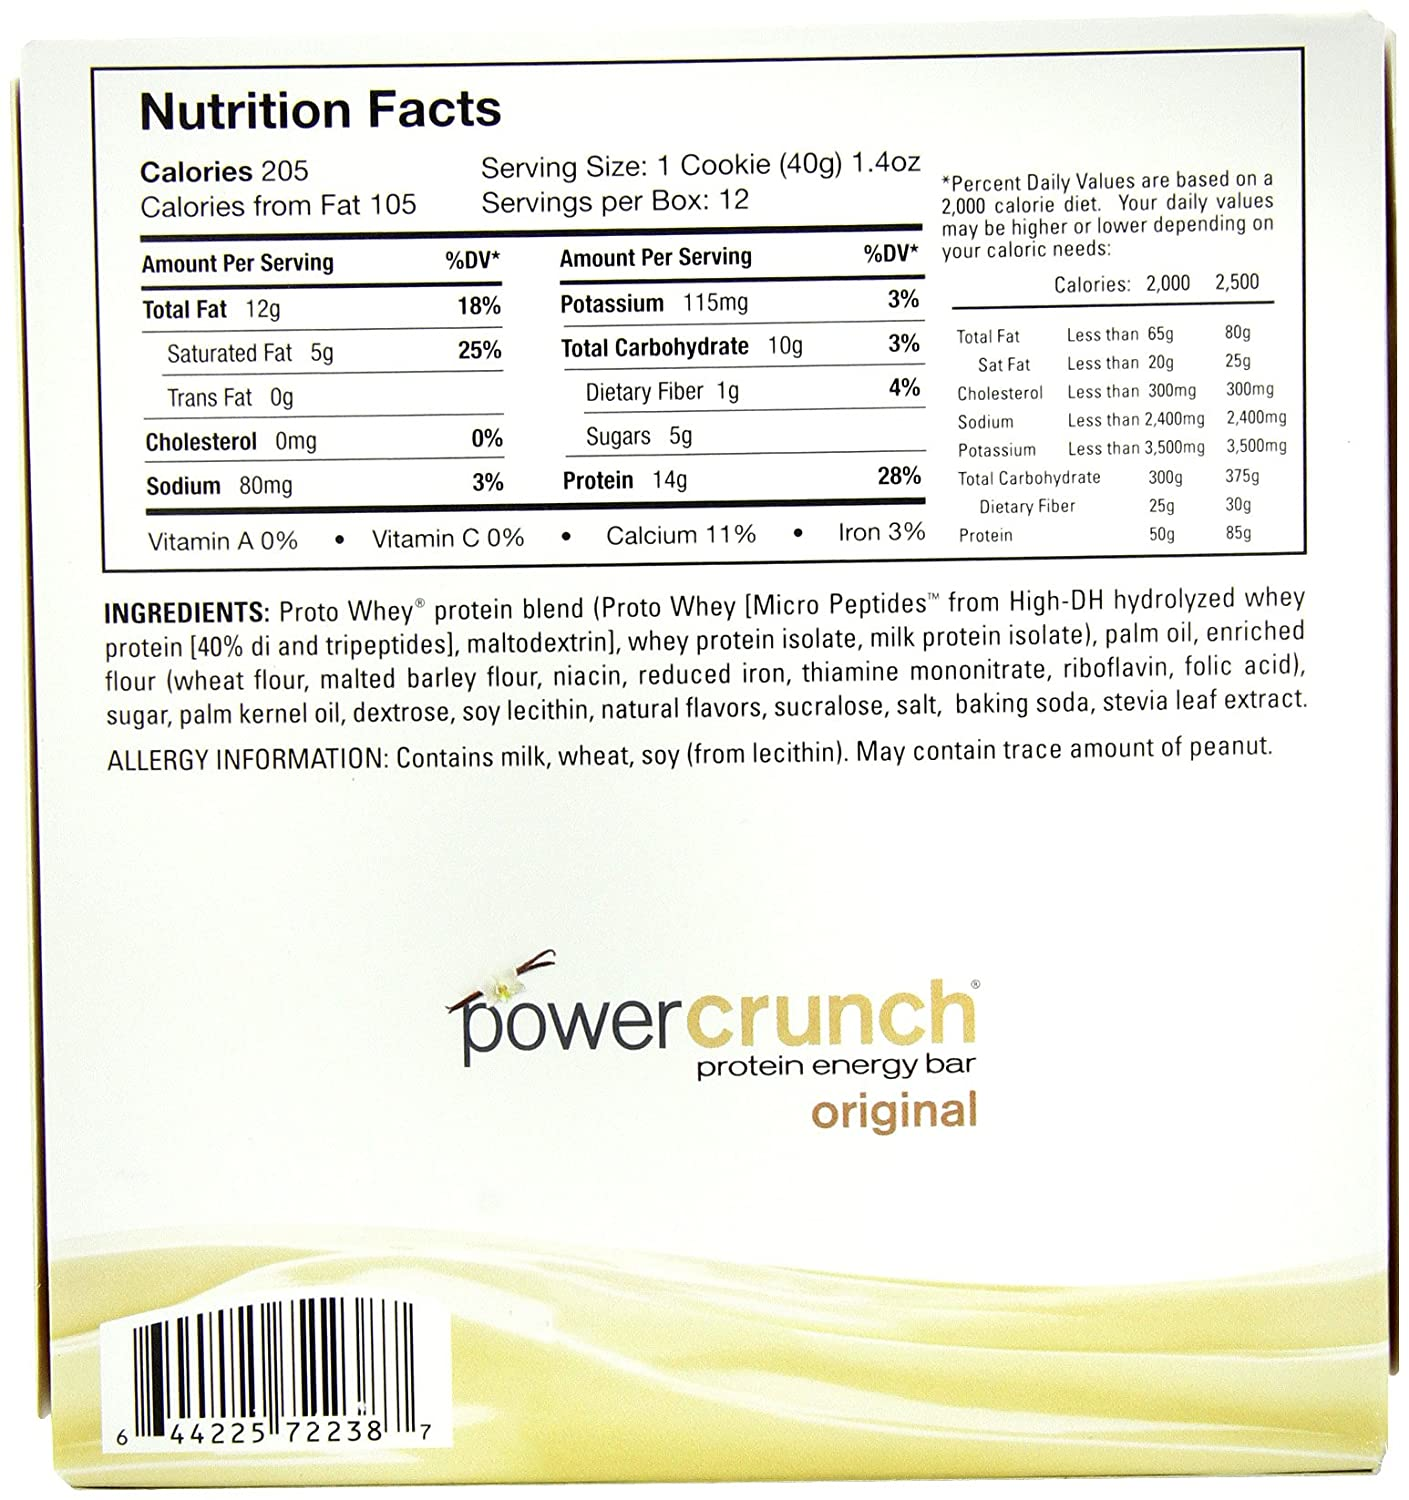 Power Crunch Protein Energy Bar Orignal, French Vanilla Creme, 1.4-Ounce Bar Pack of 12